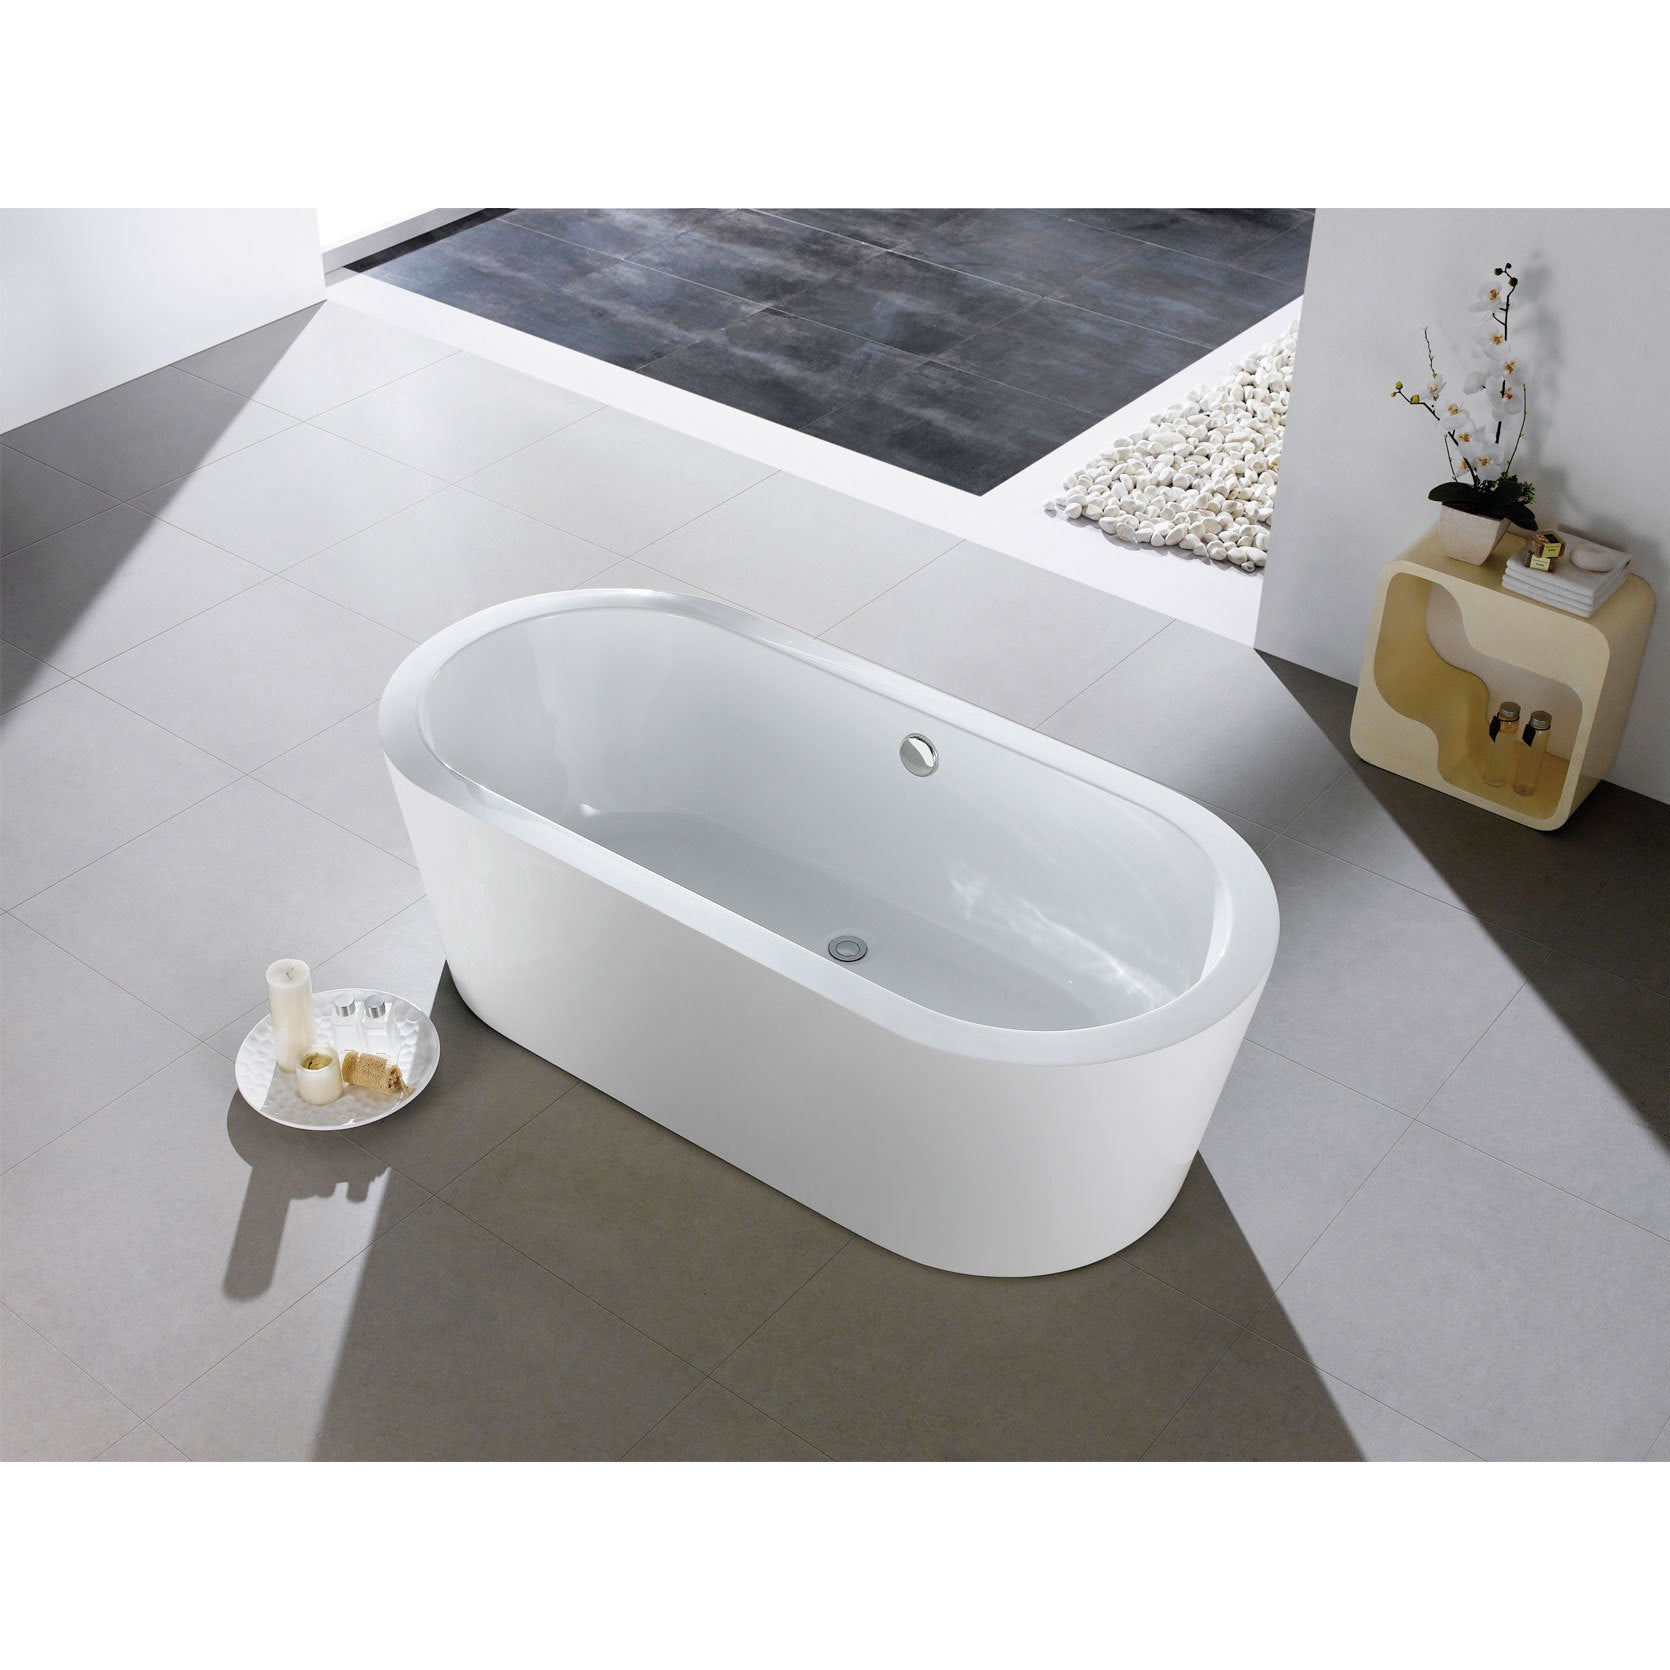 Captivating Mandalay 58 Inch X 29 Inch White Oval Soaking Bathtub   Free Shipping Today    Overstock   18569770